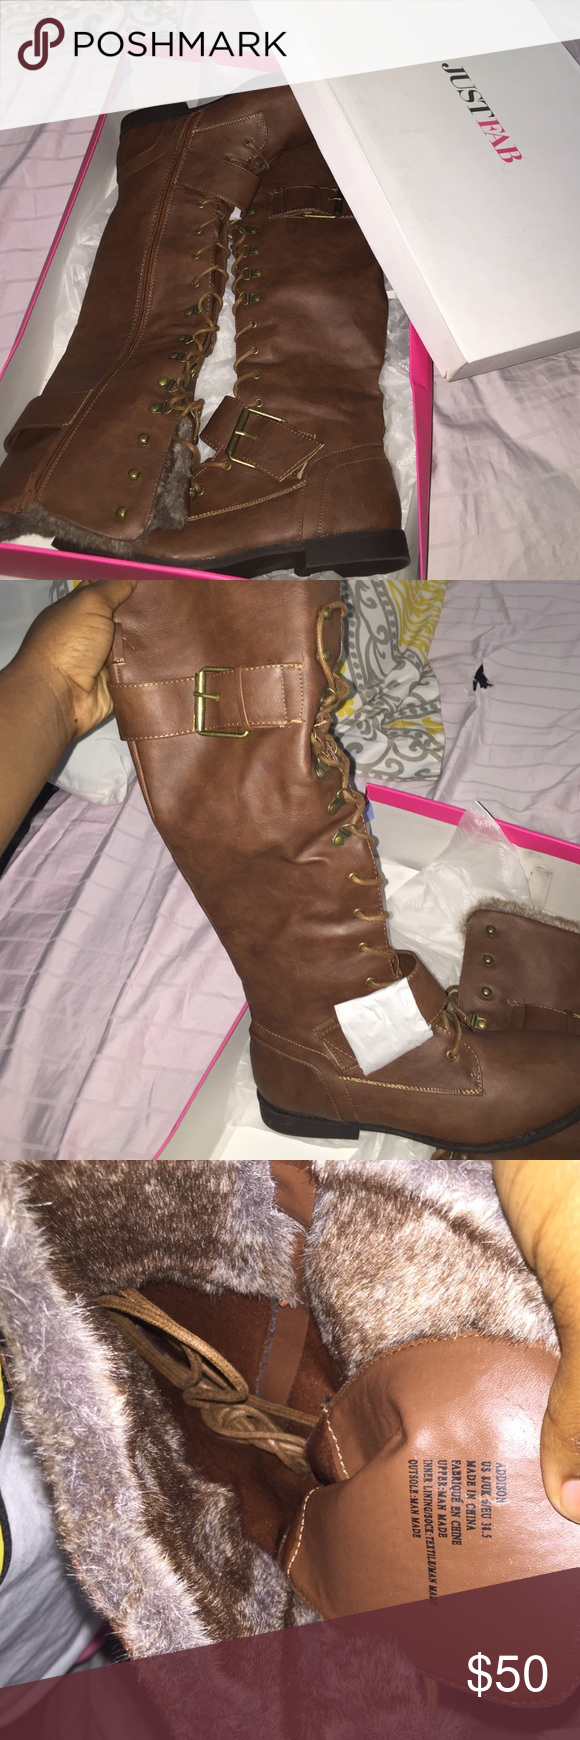 These are Addison Boots from JustFab. Never Wore . These are Addison boots from JustFab. They are in the color cognac. They are really cute stylish boots. Never got around to wearing them. They are size 8 and have never been worn. JustFab Shoes Winter & Rain Boots